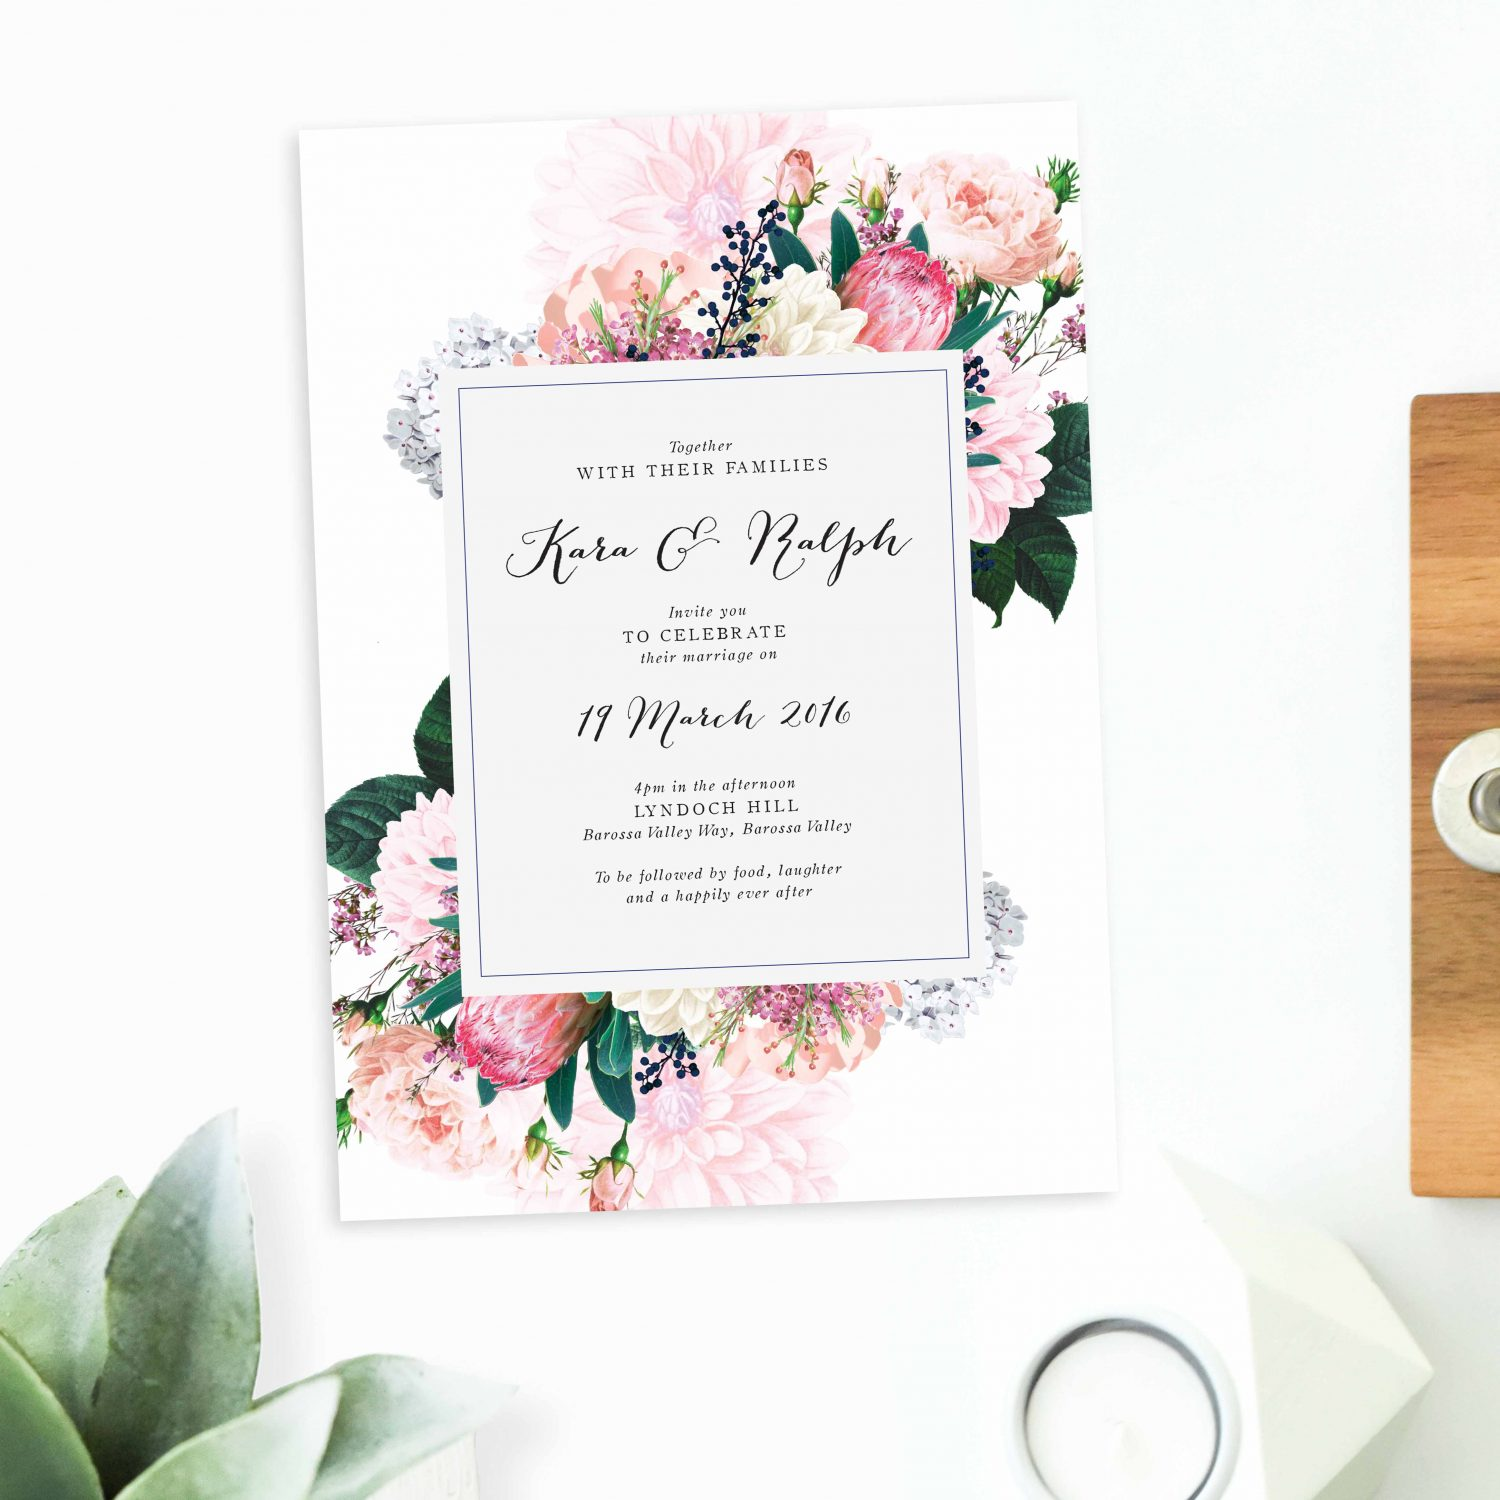 Native Fl Wedding Invitations Protea Pink Blush Rose Stationery Australia Invites Perth Sydney Melbourne Brisbane